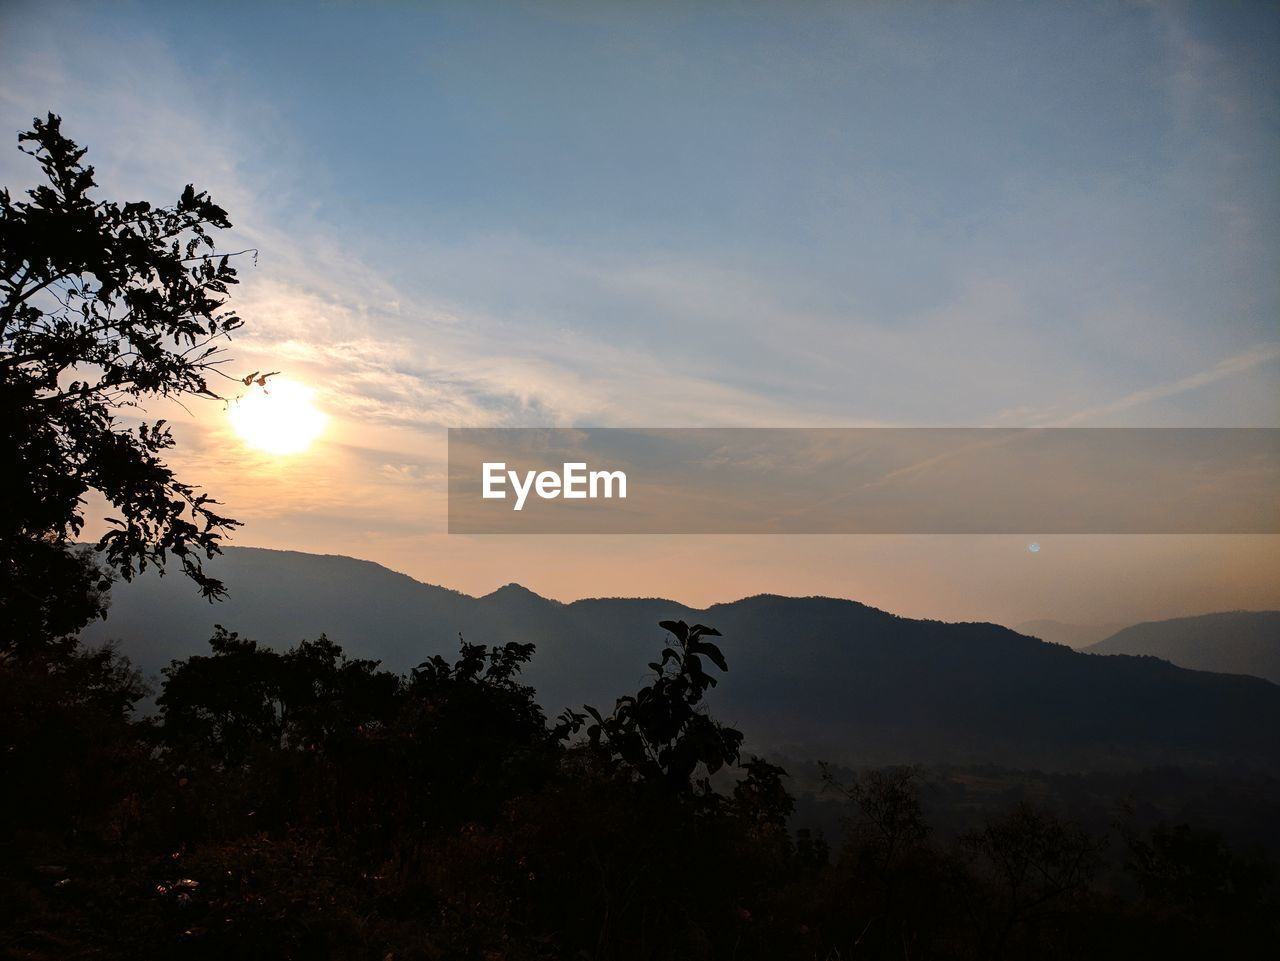 sunset, silhouette, mountain, tree, beauty in nature, nature, tranquil scene, tranquility, scenics, sky, no people, idyllic, sun, mountain range, landscape, outdoors